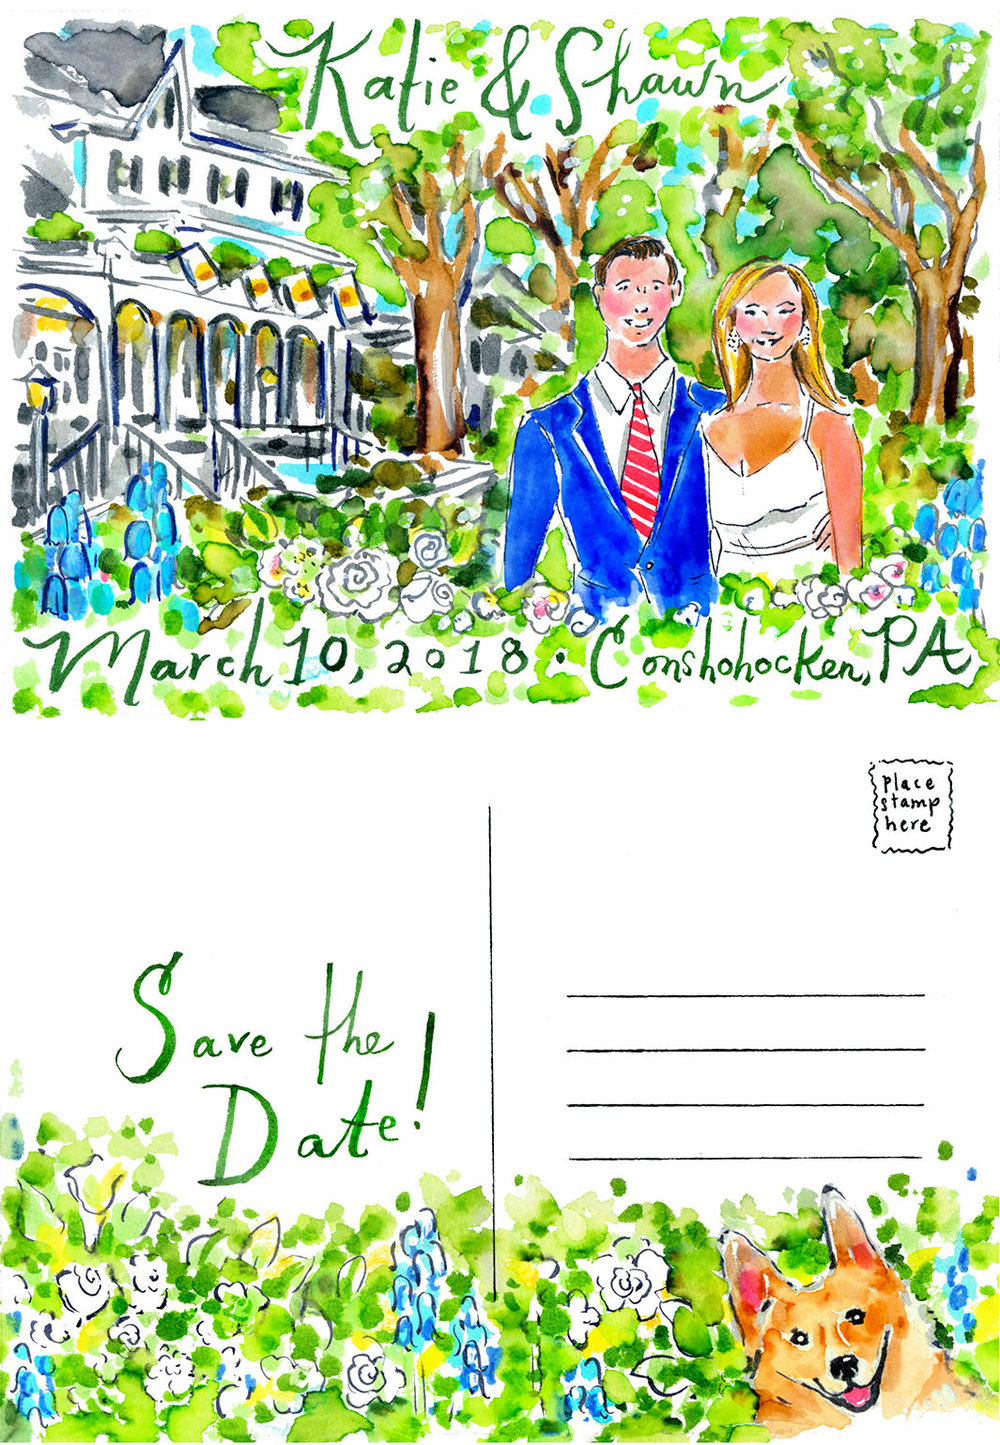 Katie & Shawn - Save the Date